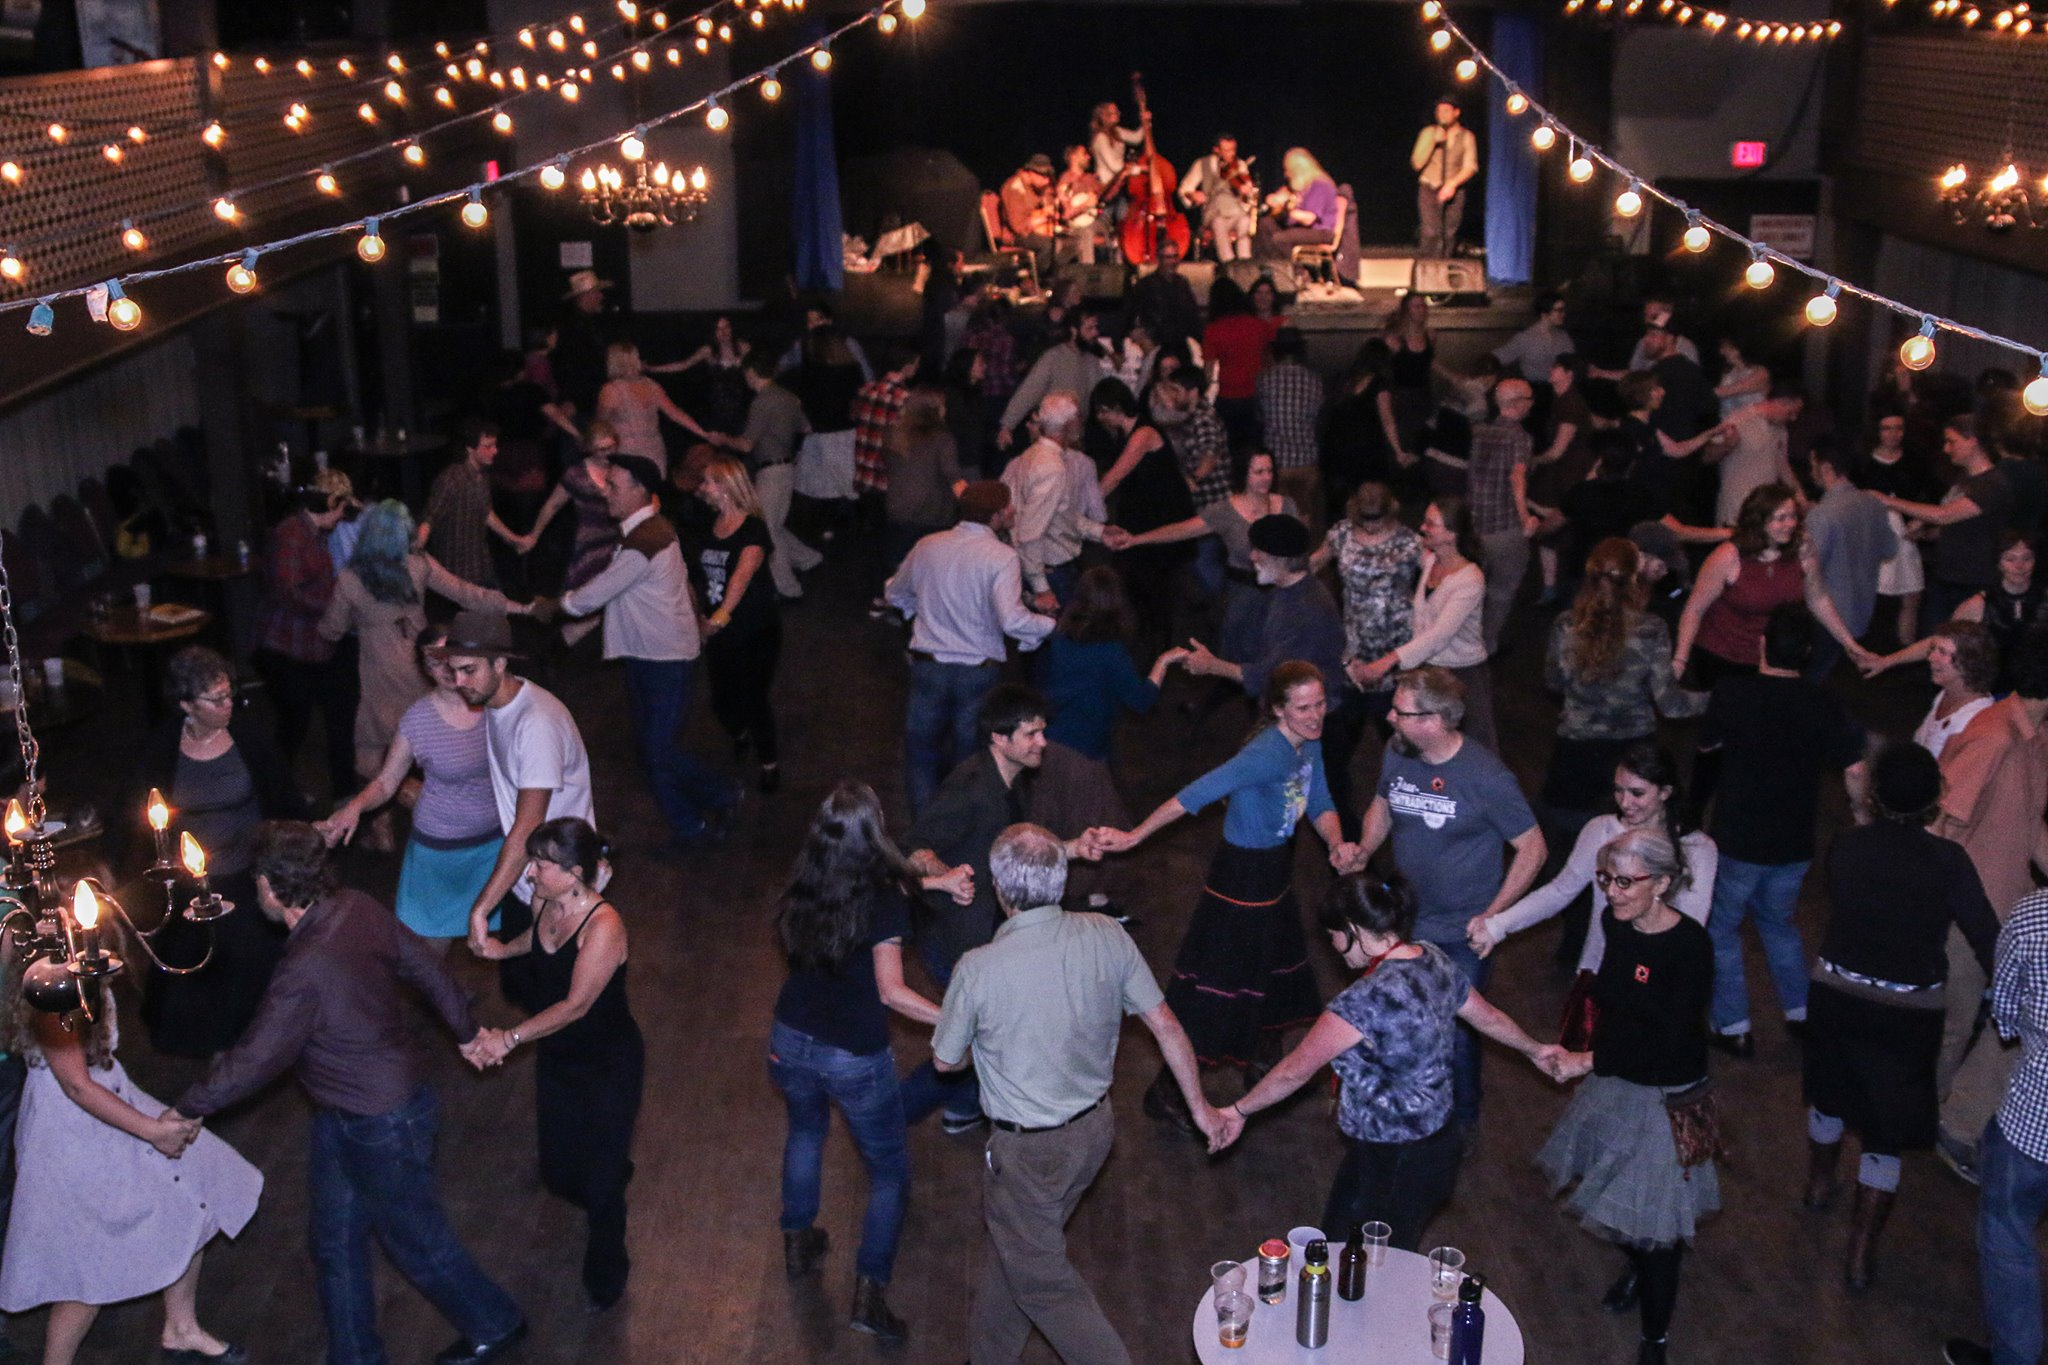 Old Time Dance Party At The Wise Hall Wise Hall